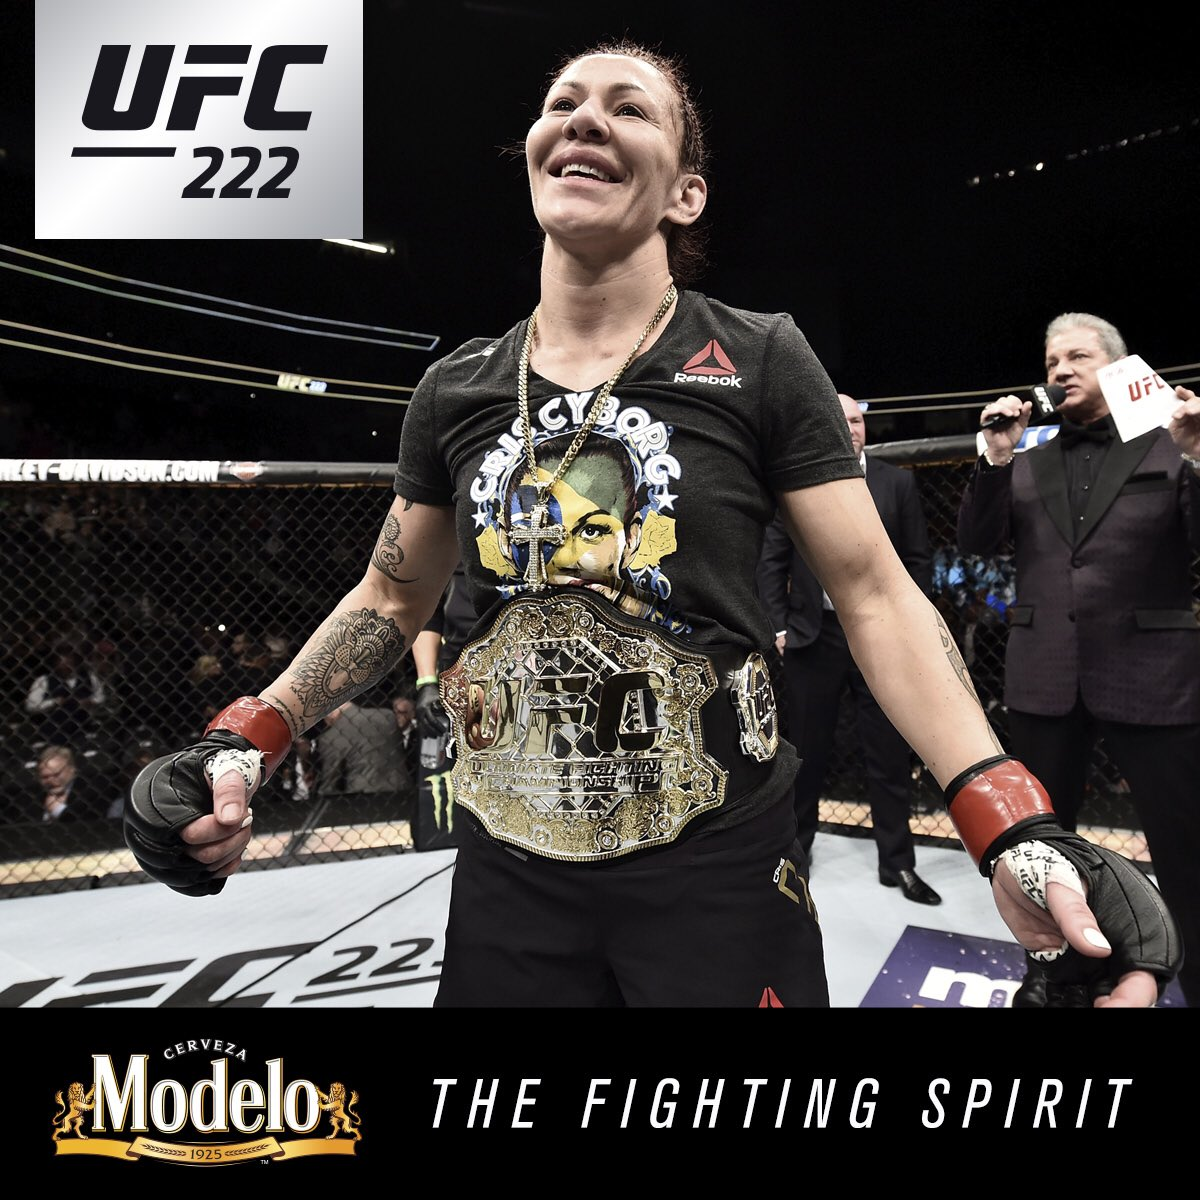 History! The #FightingSpirit was on full display at #UFC222 as @CrisCyborg extended her historic unbeaten streak while @BrianTCity did the unthinkable! @ModeloUSA